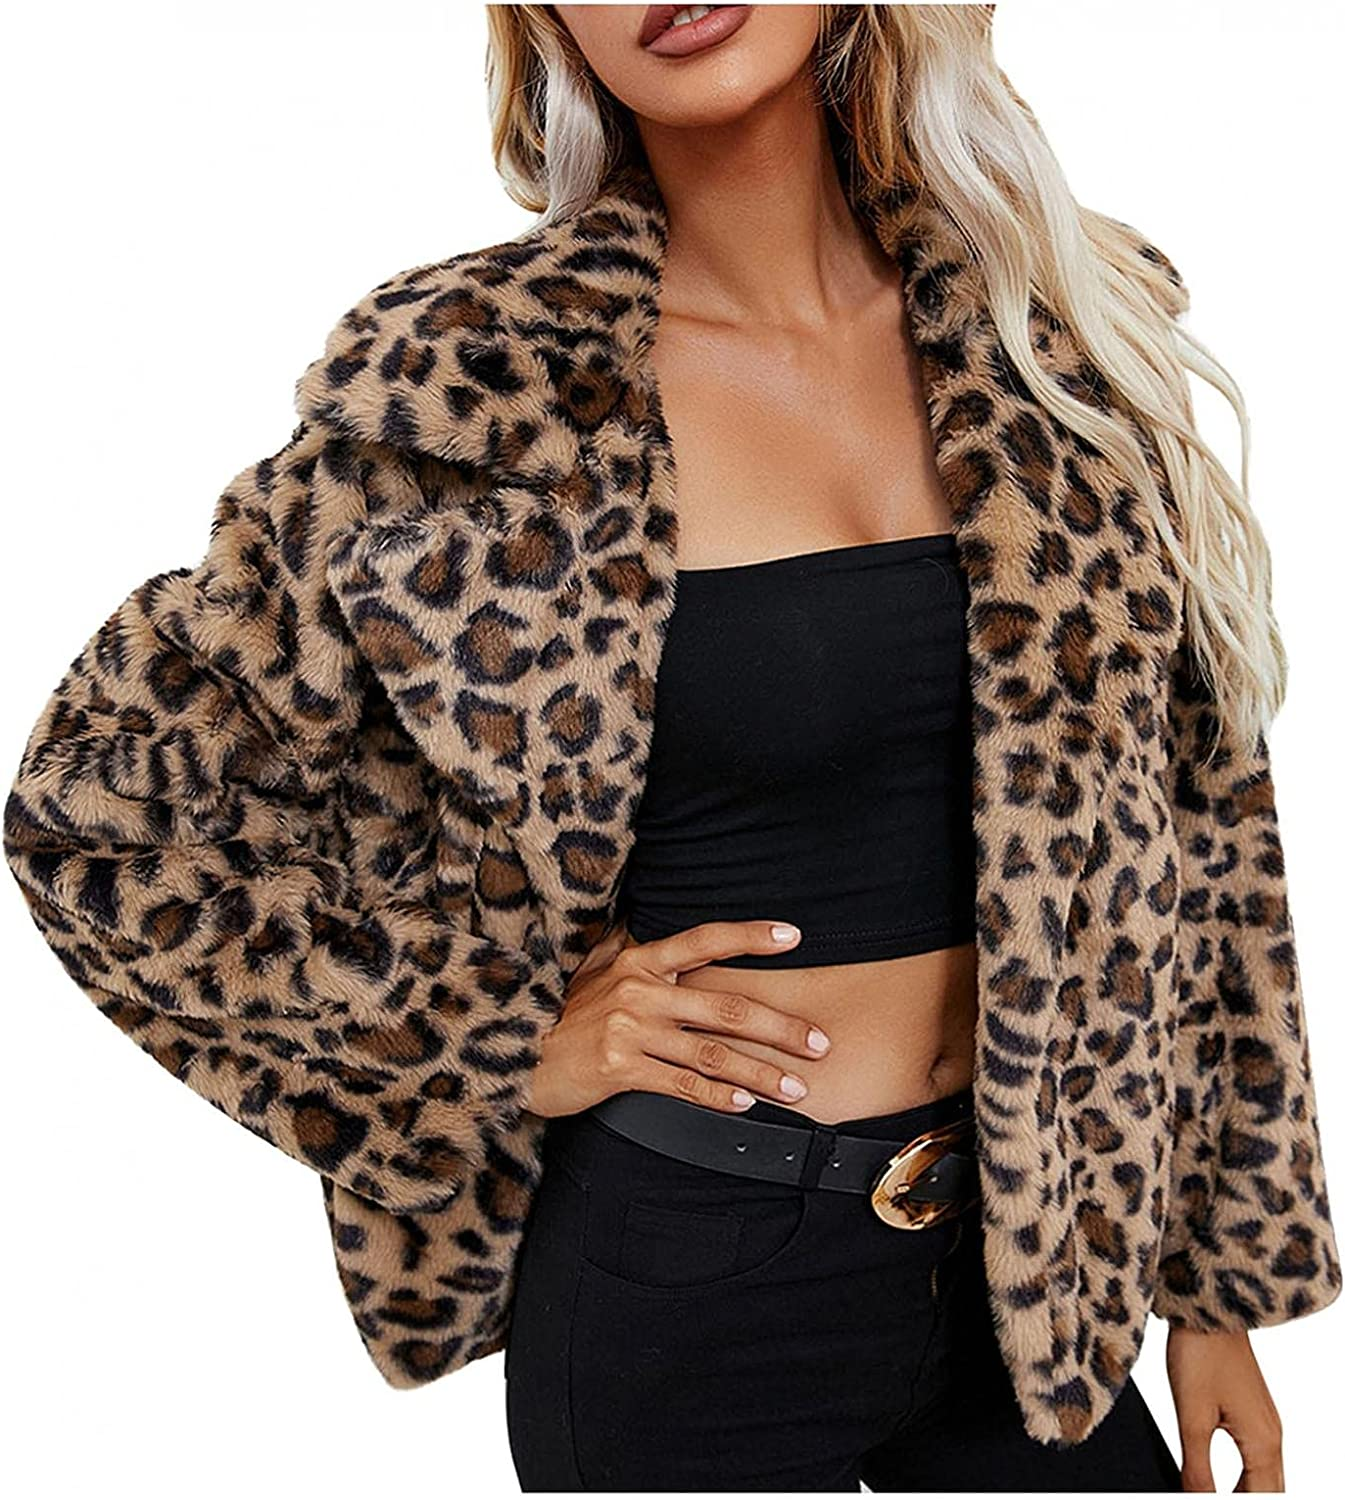 Faux Fur Coat for Womens Winter Warm Fashion Leopard Print Outwear Jacket Cardigan Cropped Lapel Coat for Club Party